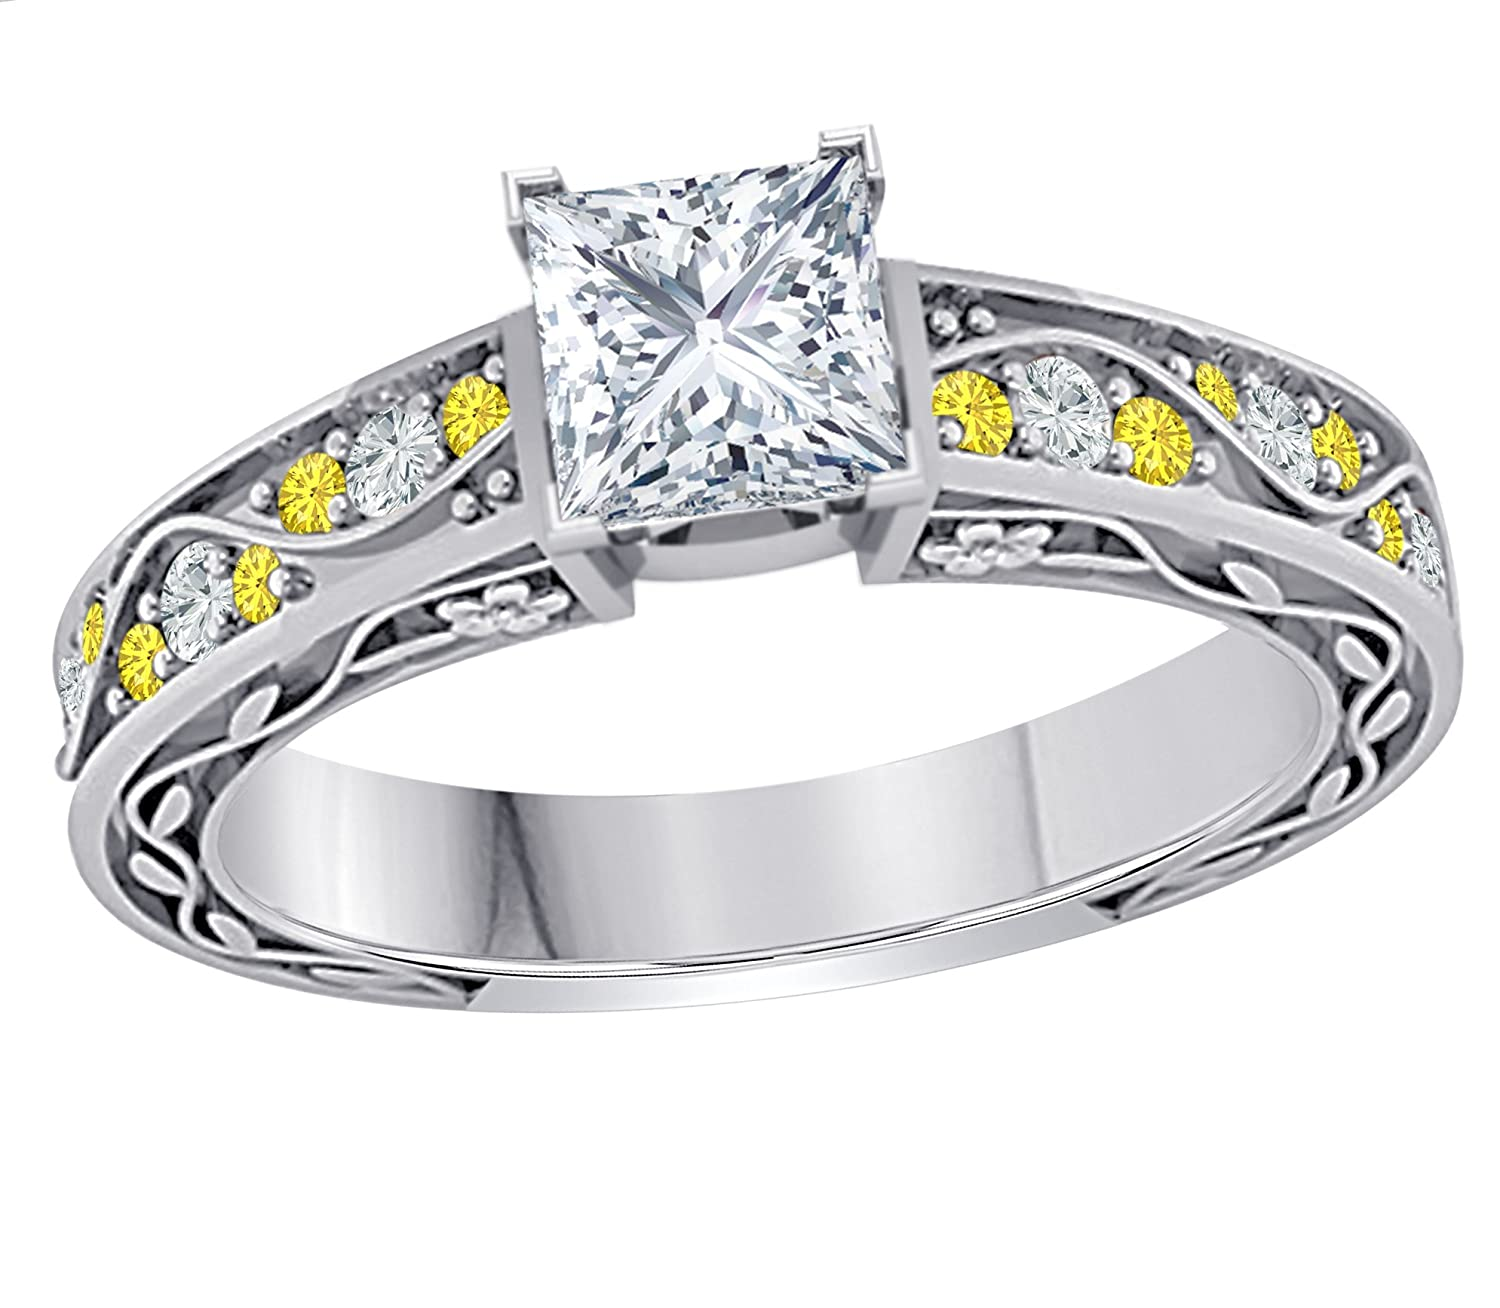 Gems and Jewels Stunning 1.00 CT Princess Cut Cubic Zirconia /& CZ Yellow Sapphire .925 Sterling Silver Plated Promise Engagement Wedding Ring Gift